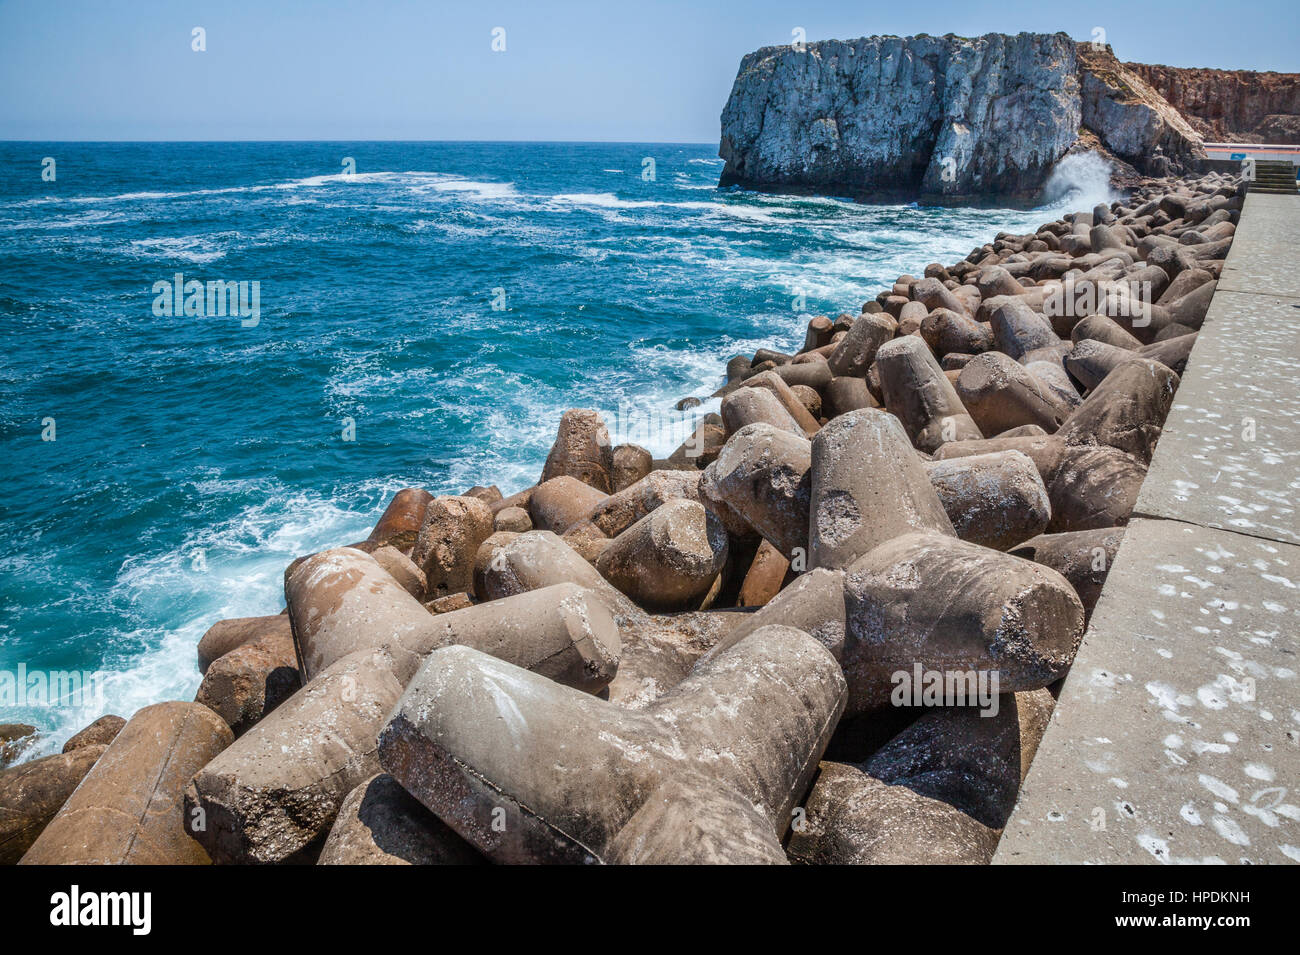 Portugal, Algarve, Sagres, massive tetrapod concrete structures reinforce the breakwater mole of Porto da Baleeira - Stock Image